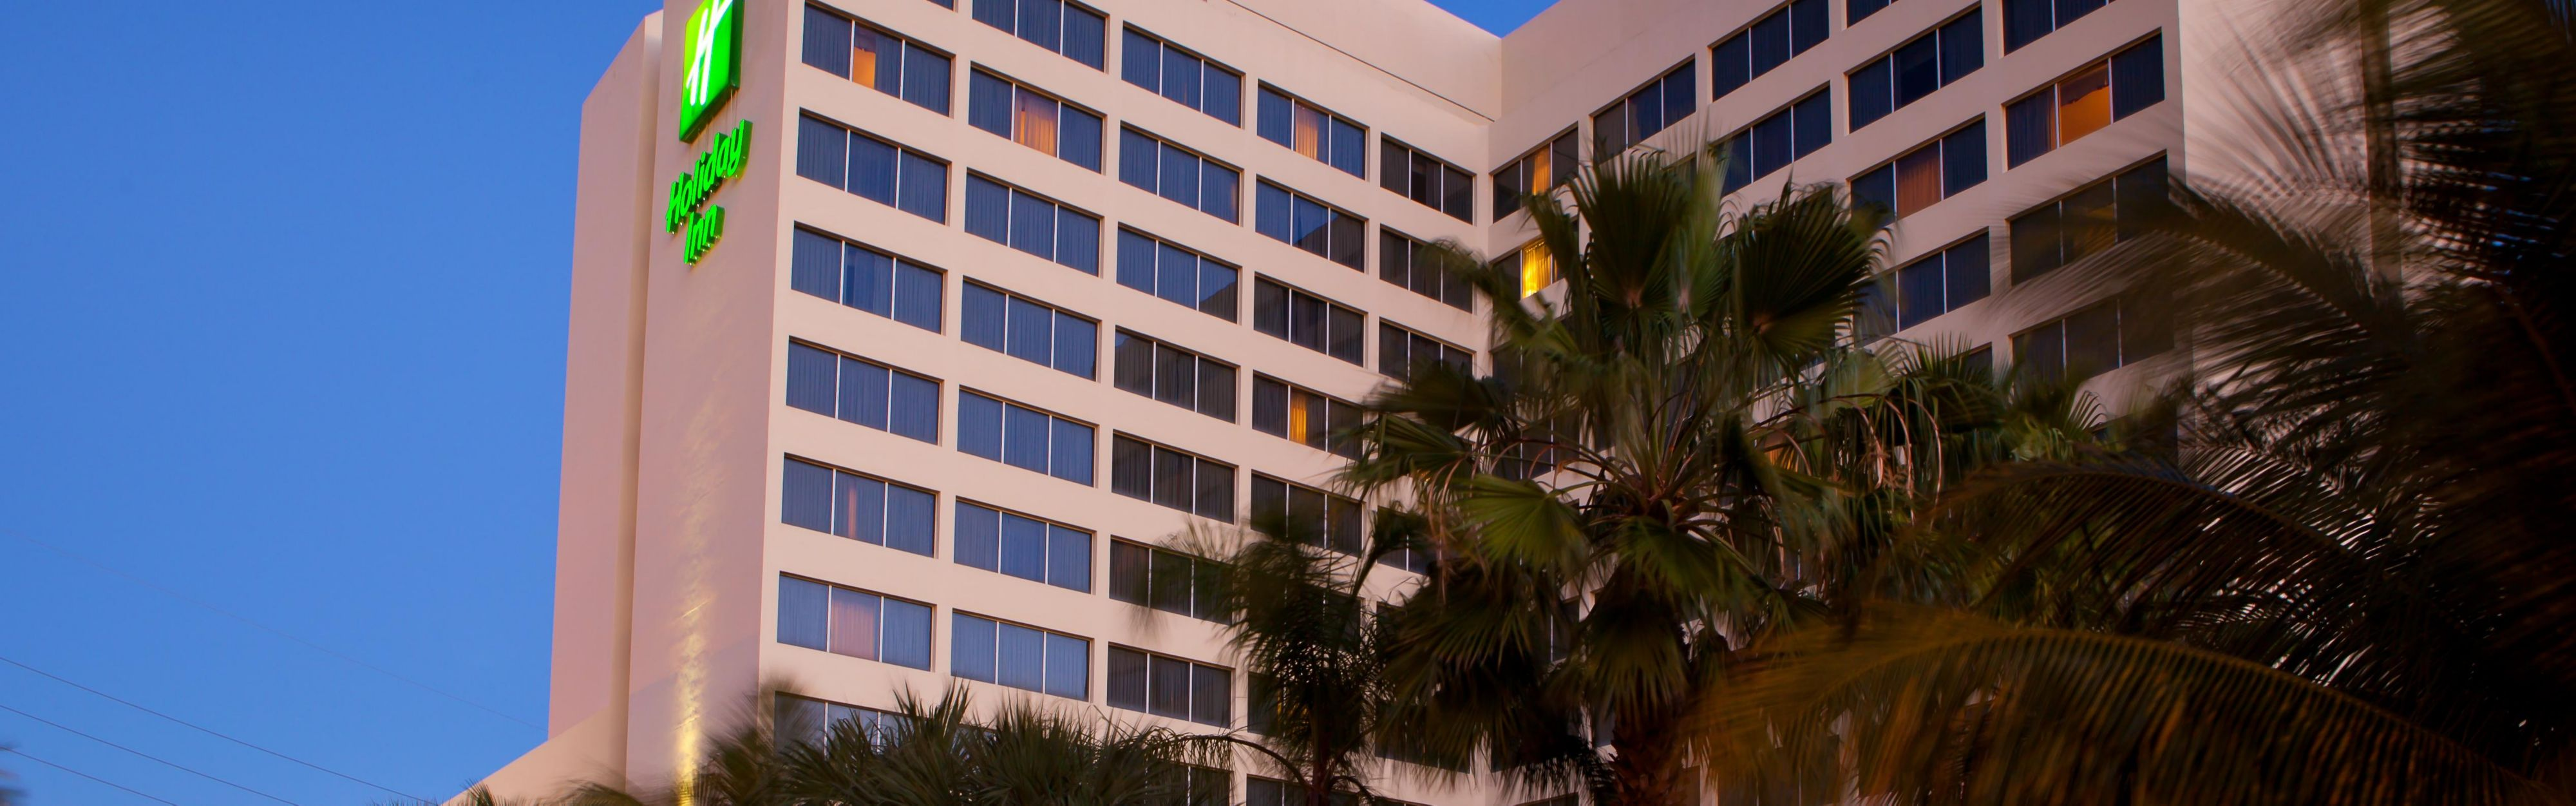 Holiday Inn Palm Beach-Airport Conf Ctr image 0